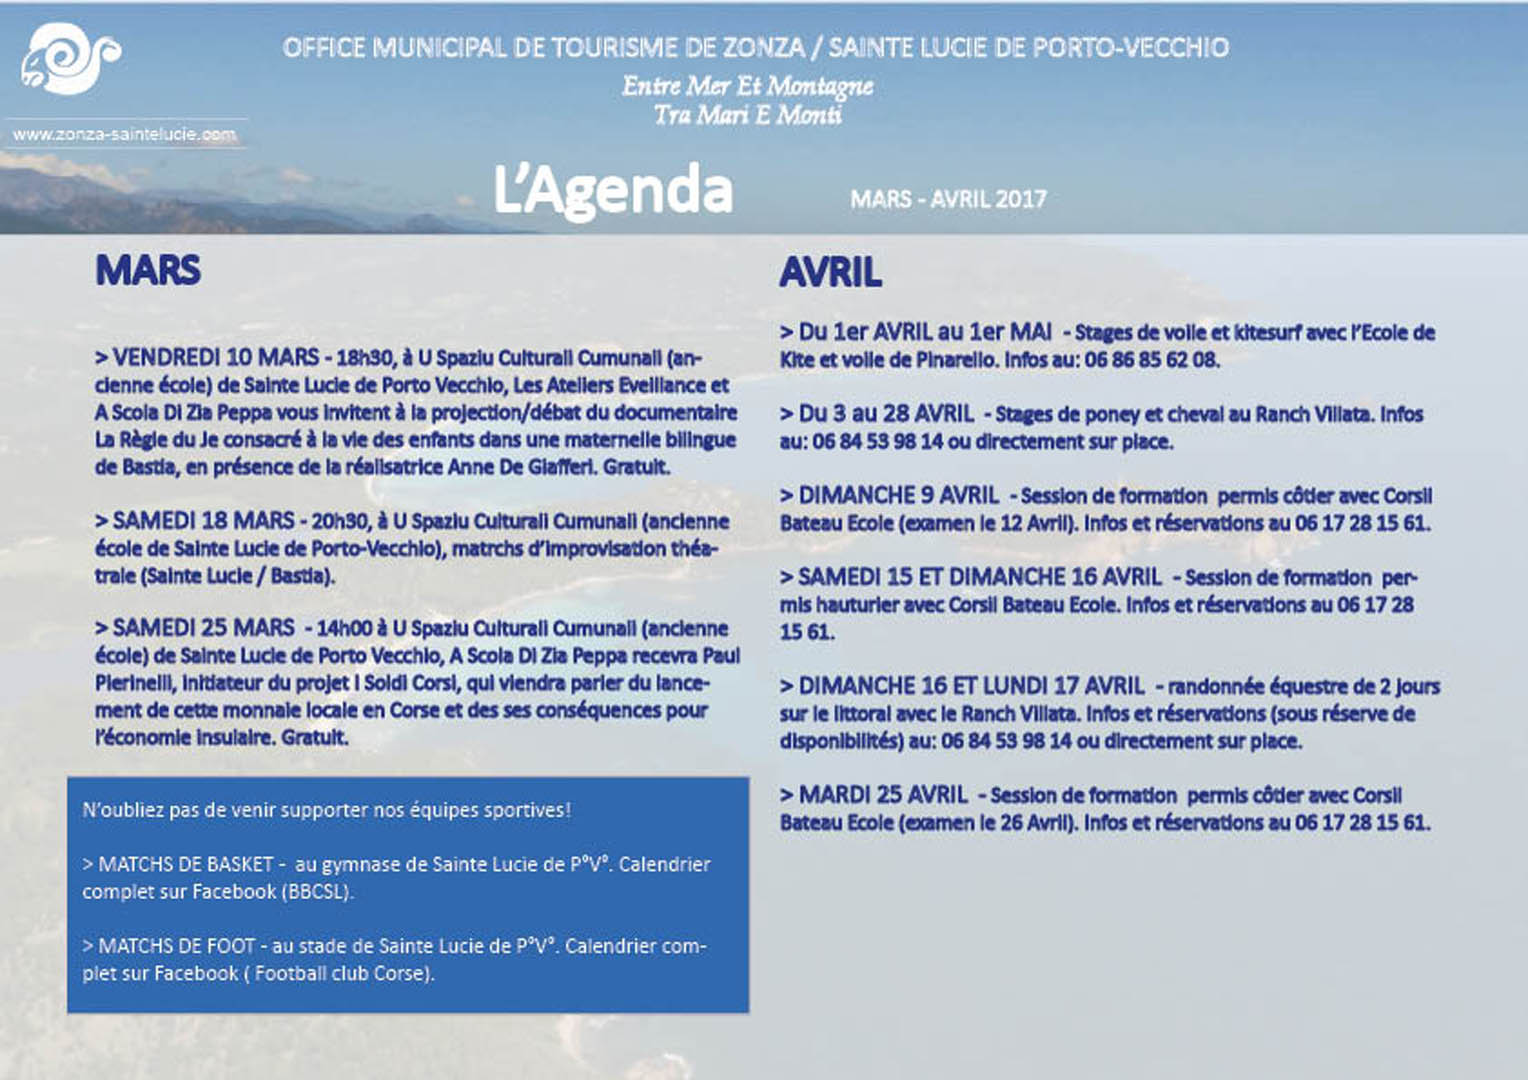 L 39 agenda mars avril 2017 office de tourisme de zonza - Office tourisme sainte lucie de porto vecchio ...